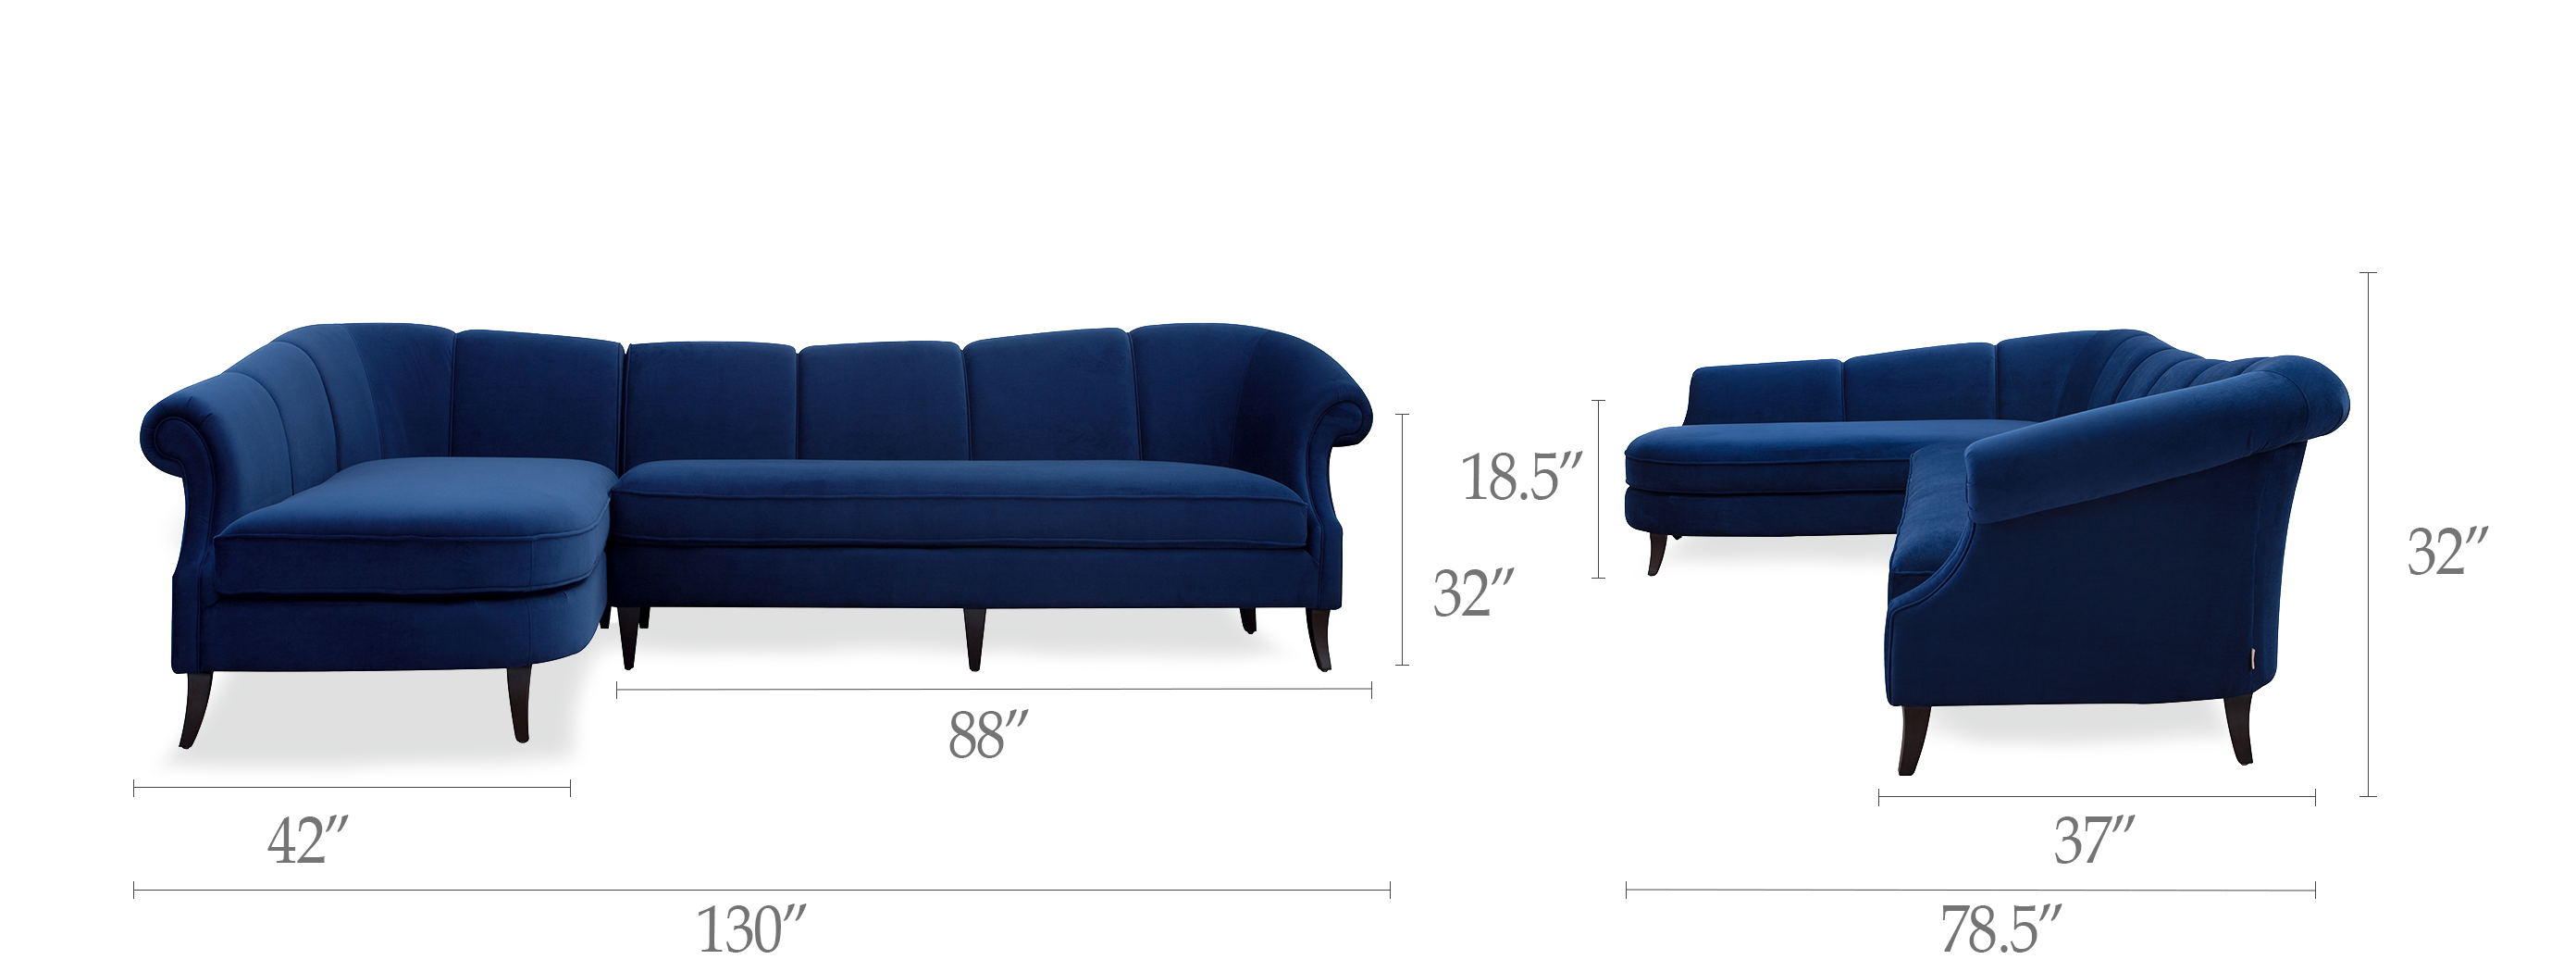 Victoria Upholstered Left Sectional Sofa